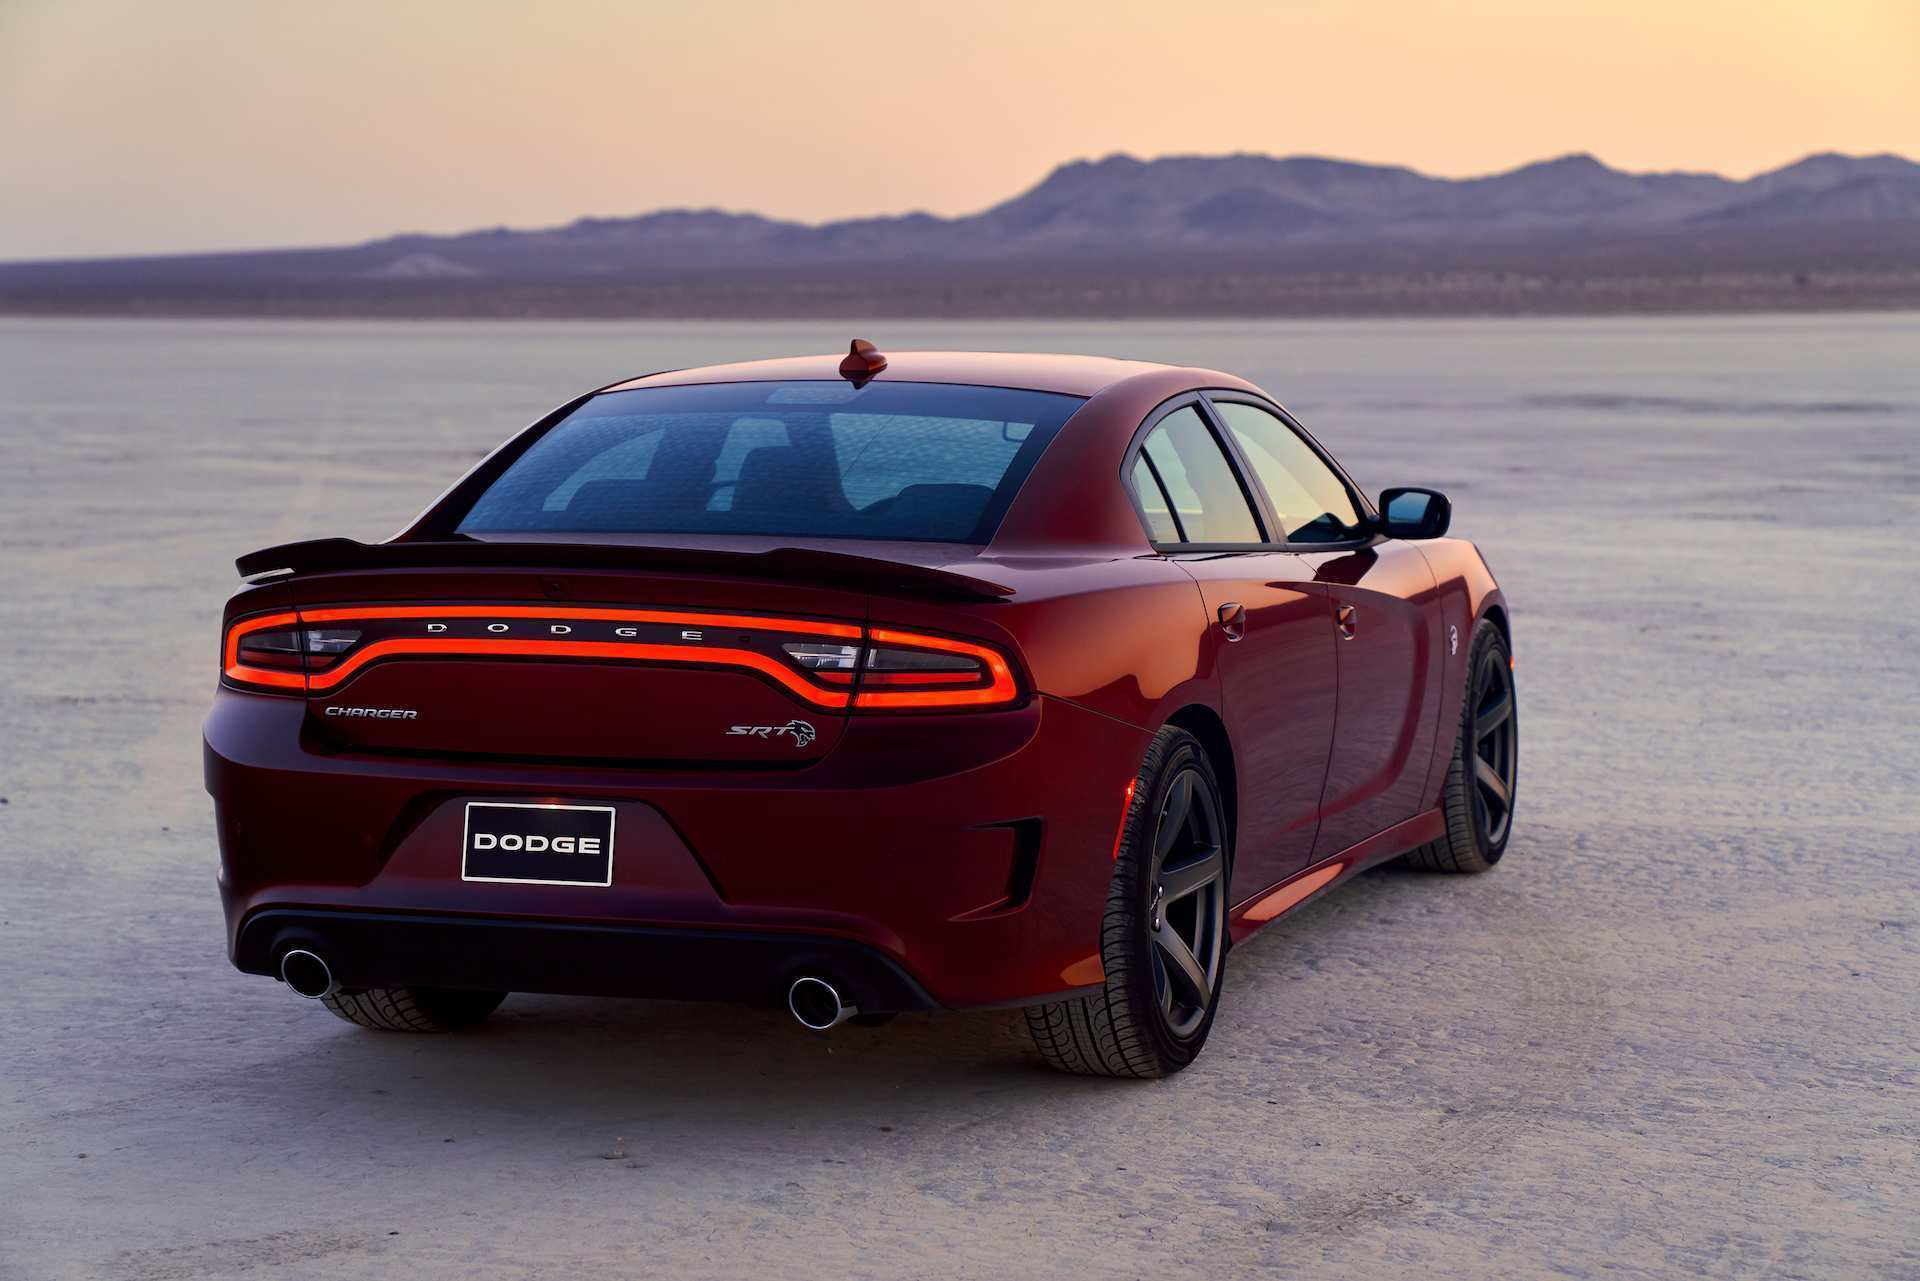 49 The Best 2020 Challenger Srt8 Hellcat Redesign And Review